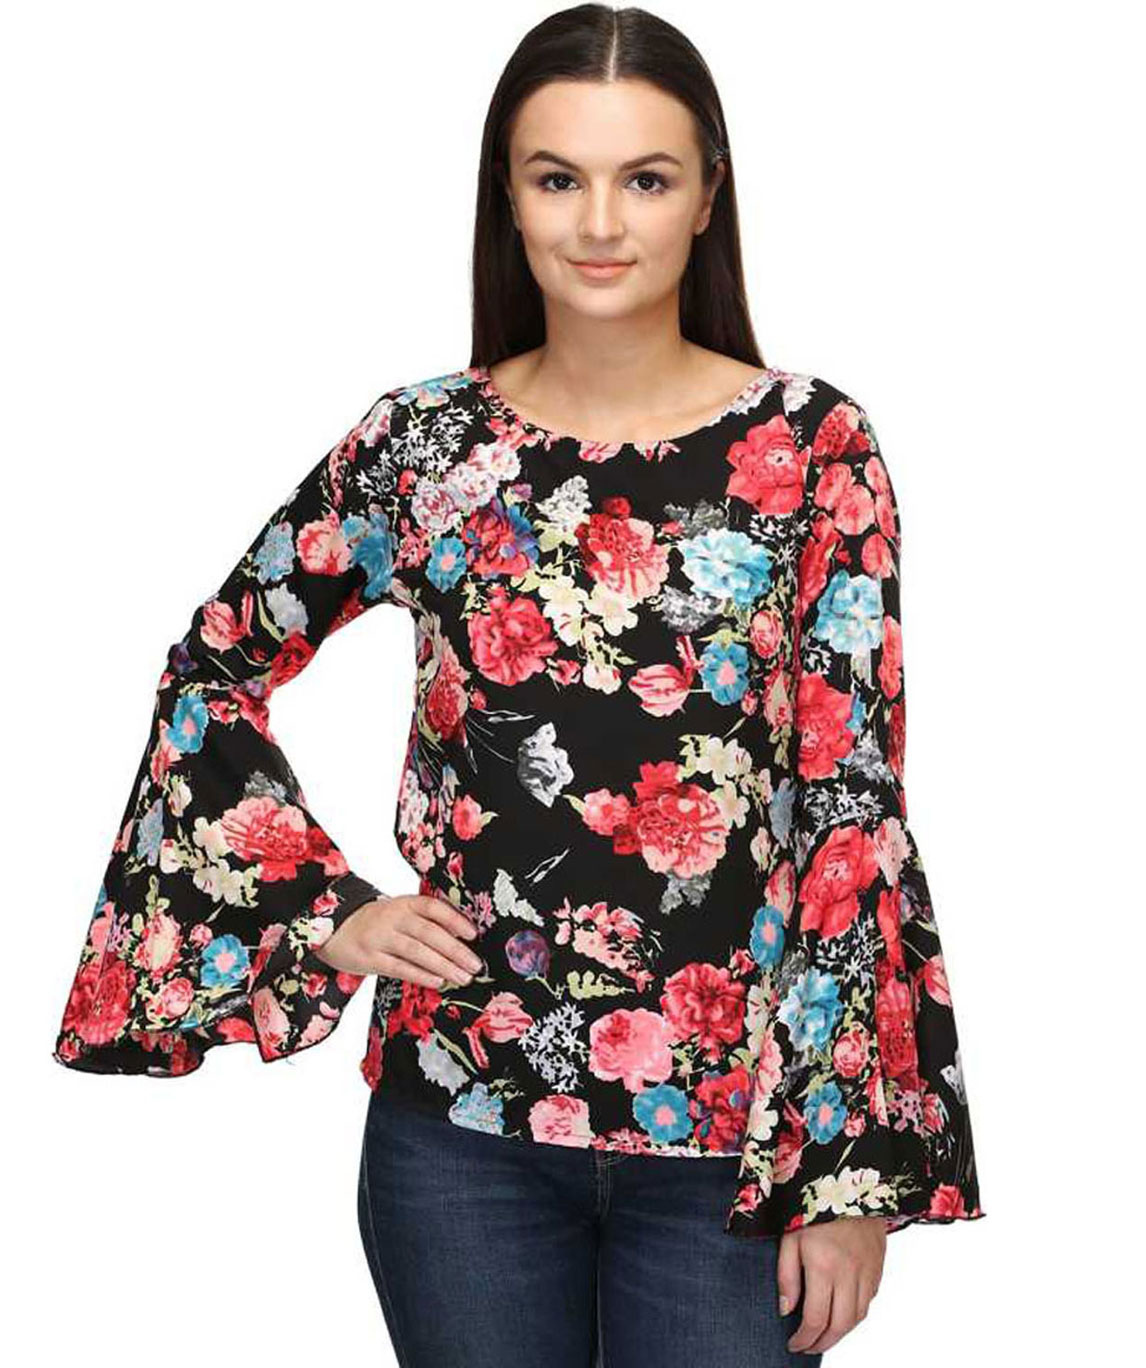 CASUAL BELL SLEEVE PRINTED WOMEN BLACK, RED MULTICOLOR TOP